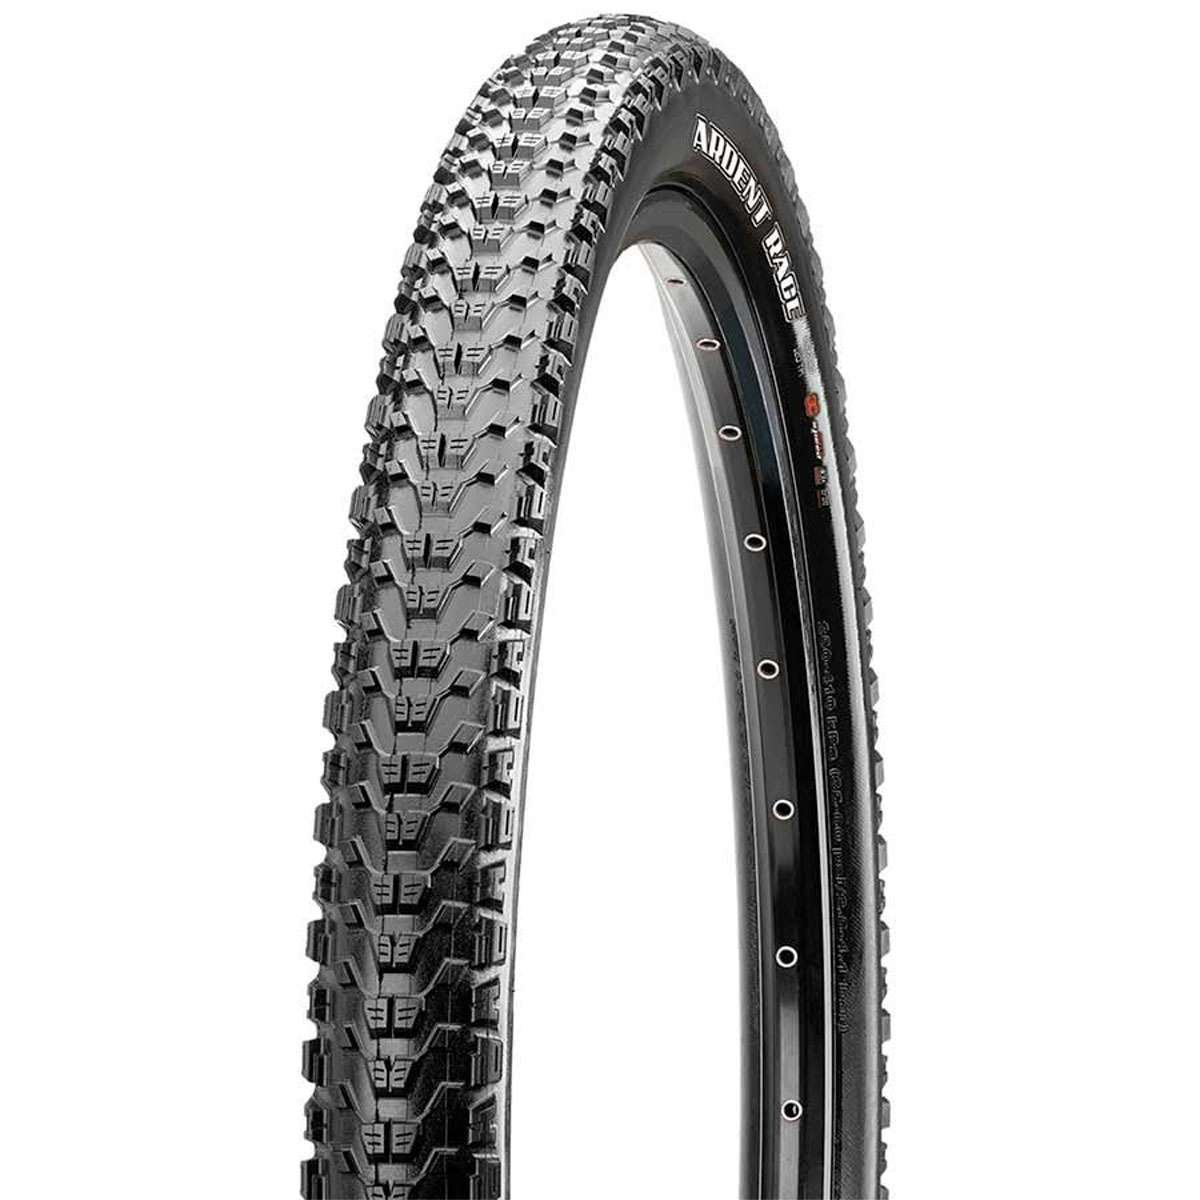 Pneu Maxxis Ardent Race - EXO Protection - 3C Maxx Speed - Tubeless Ready